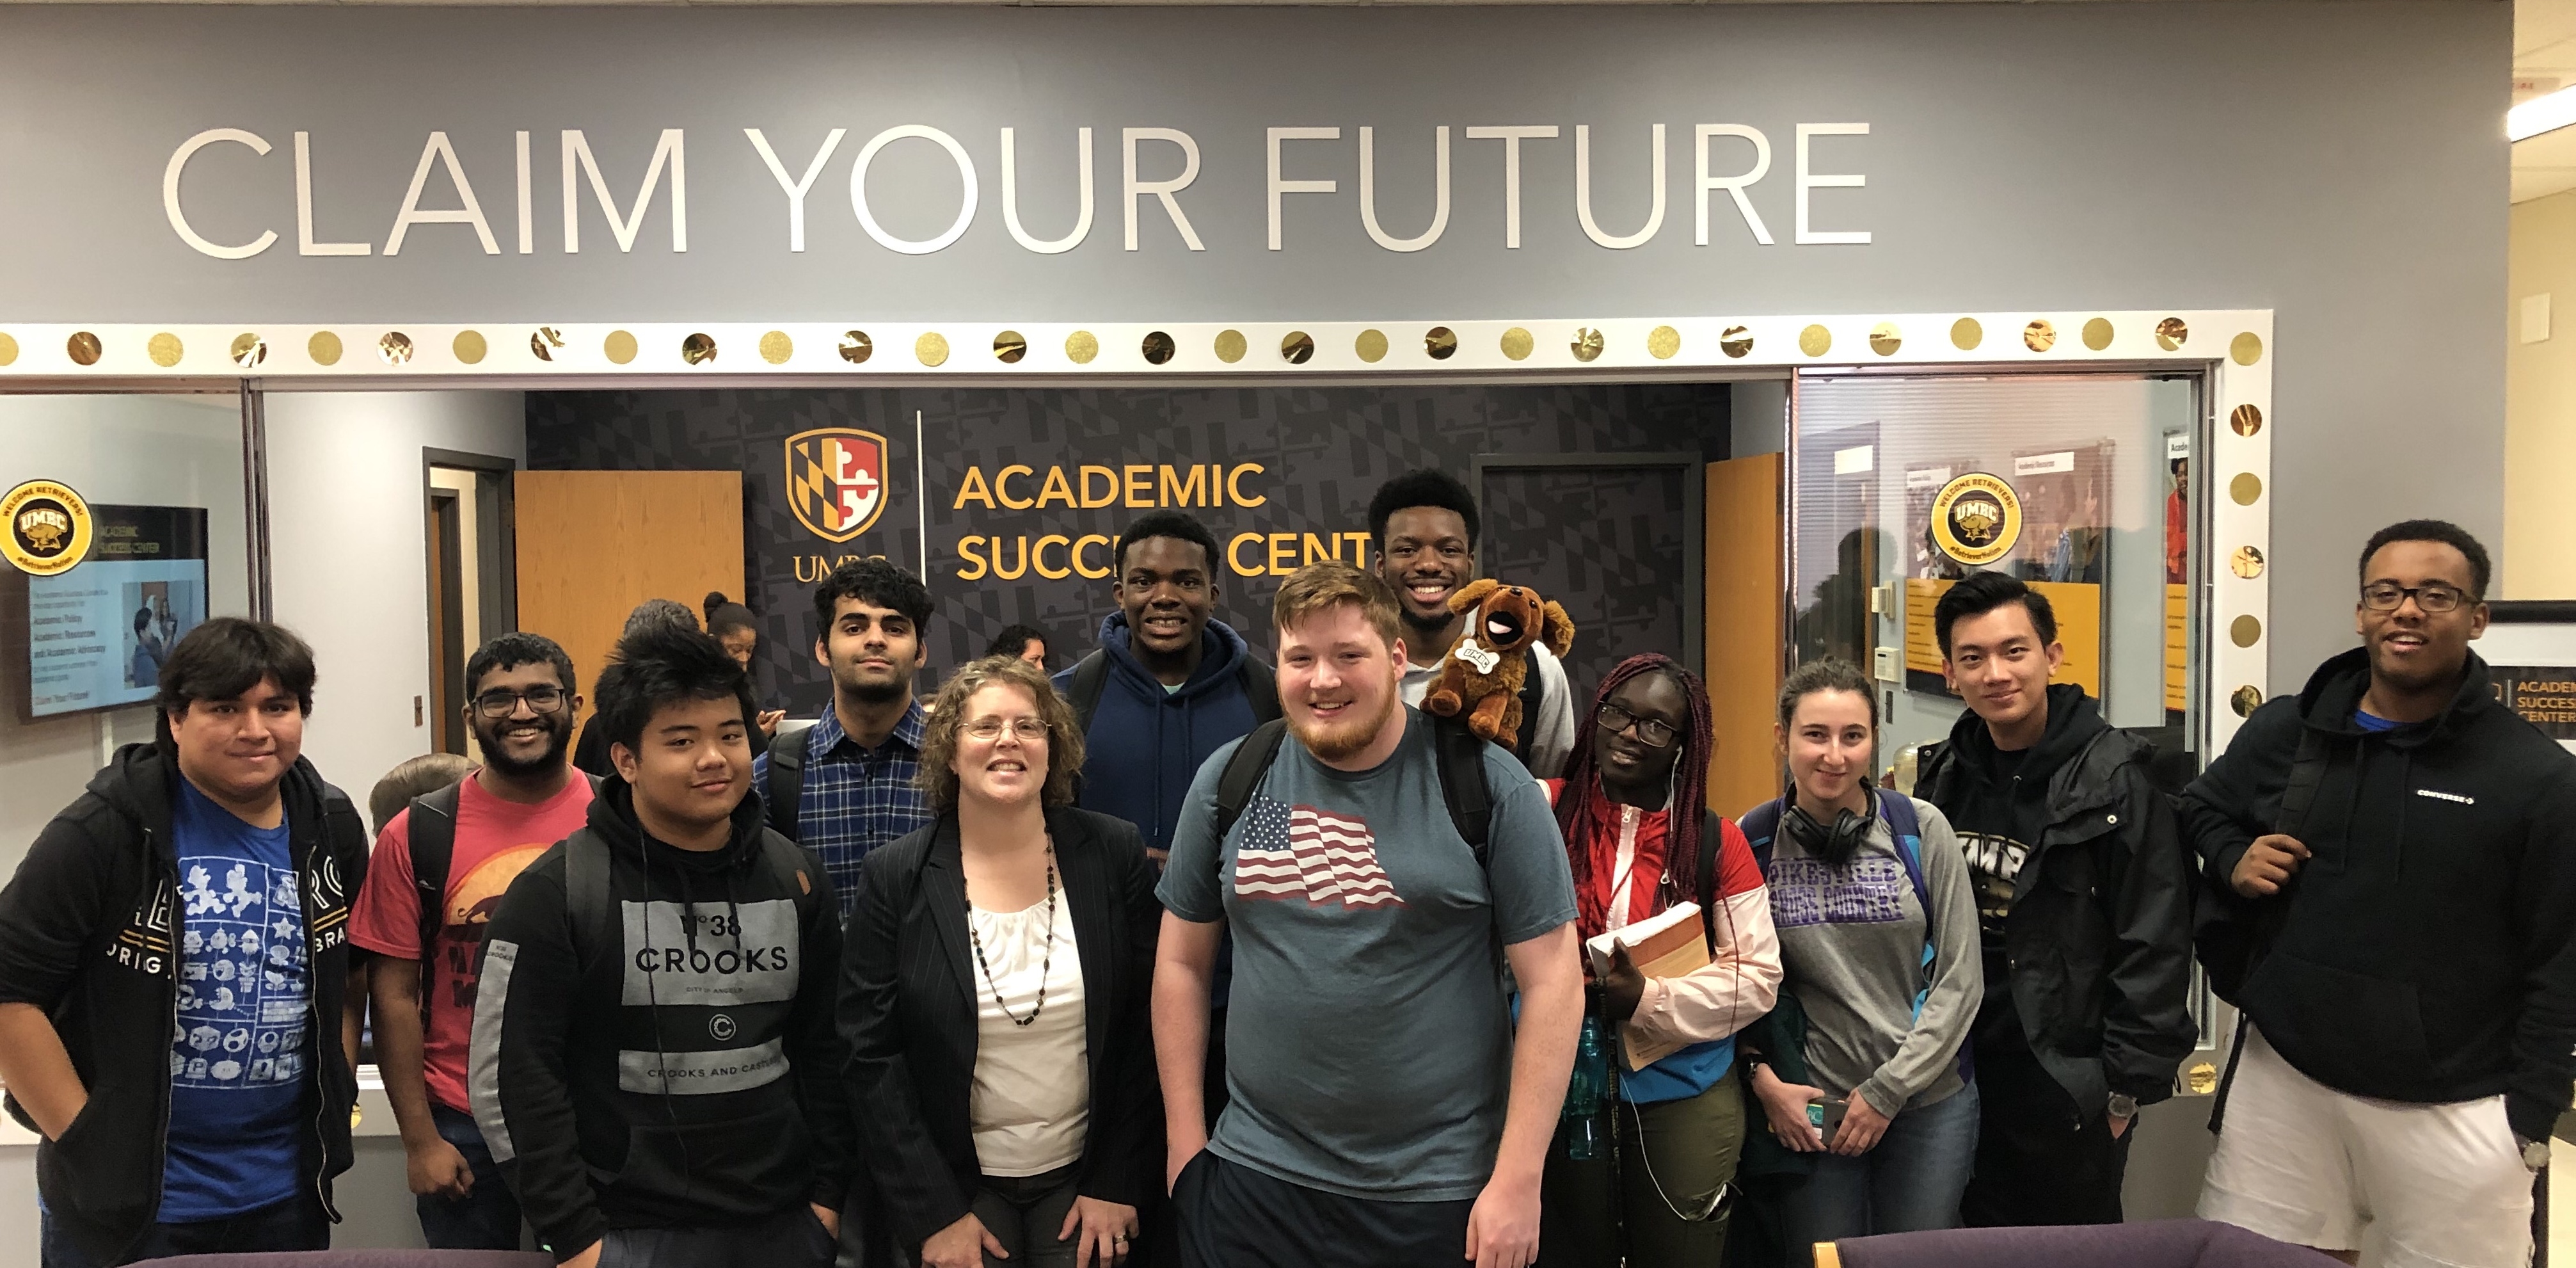 Group of Students in the Academic Success Center